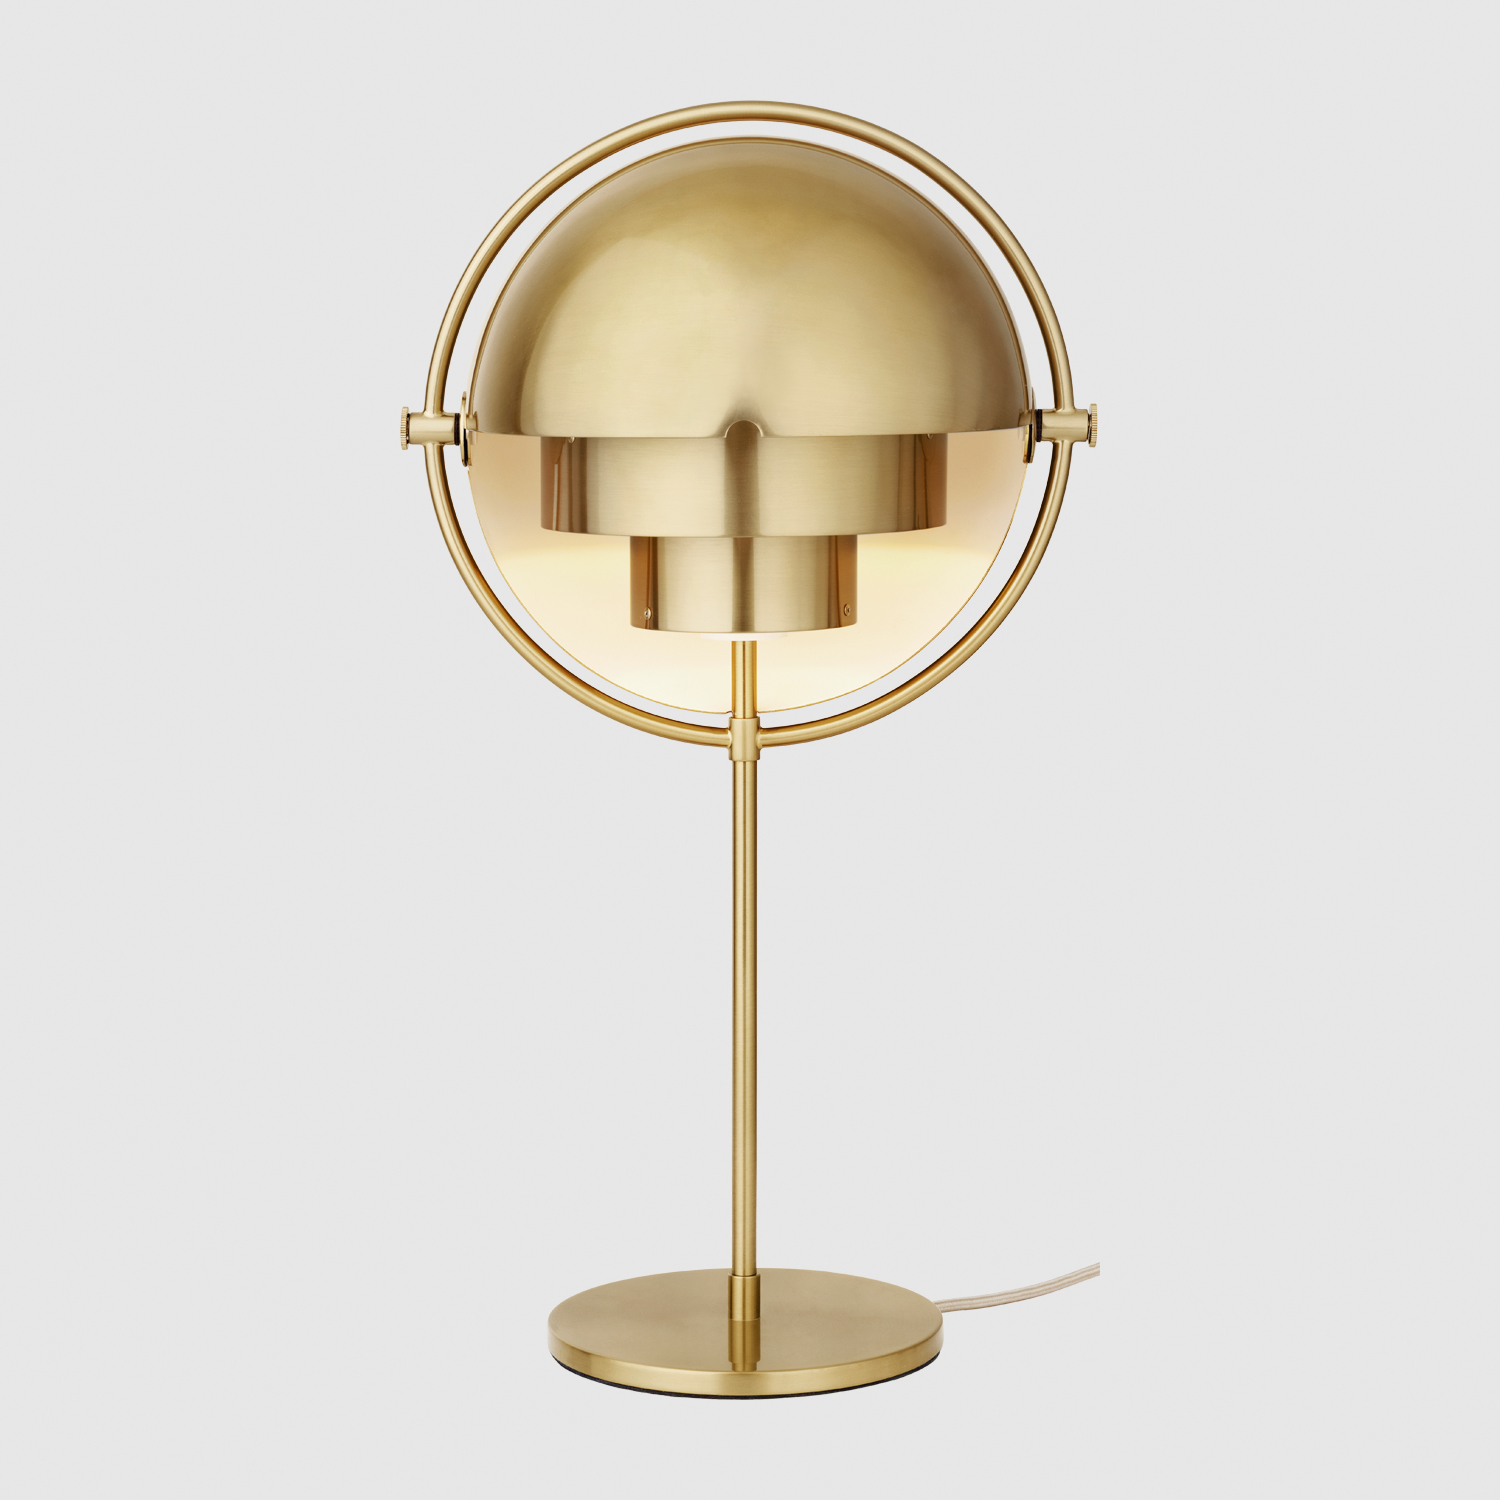 Multi-Lite_TableLamp_Brass_Brass_1_On.jpg